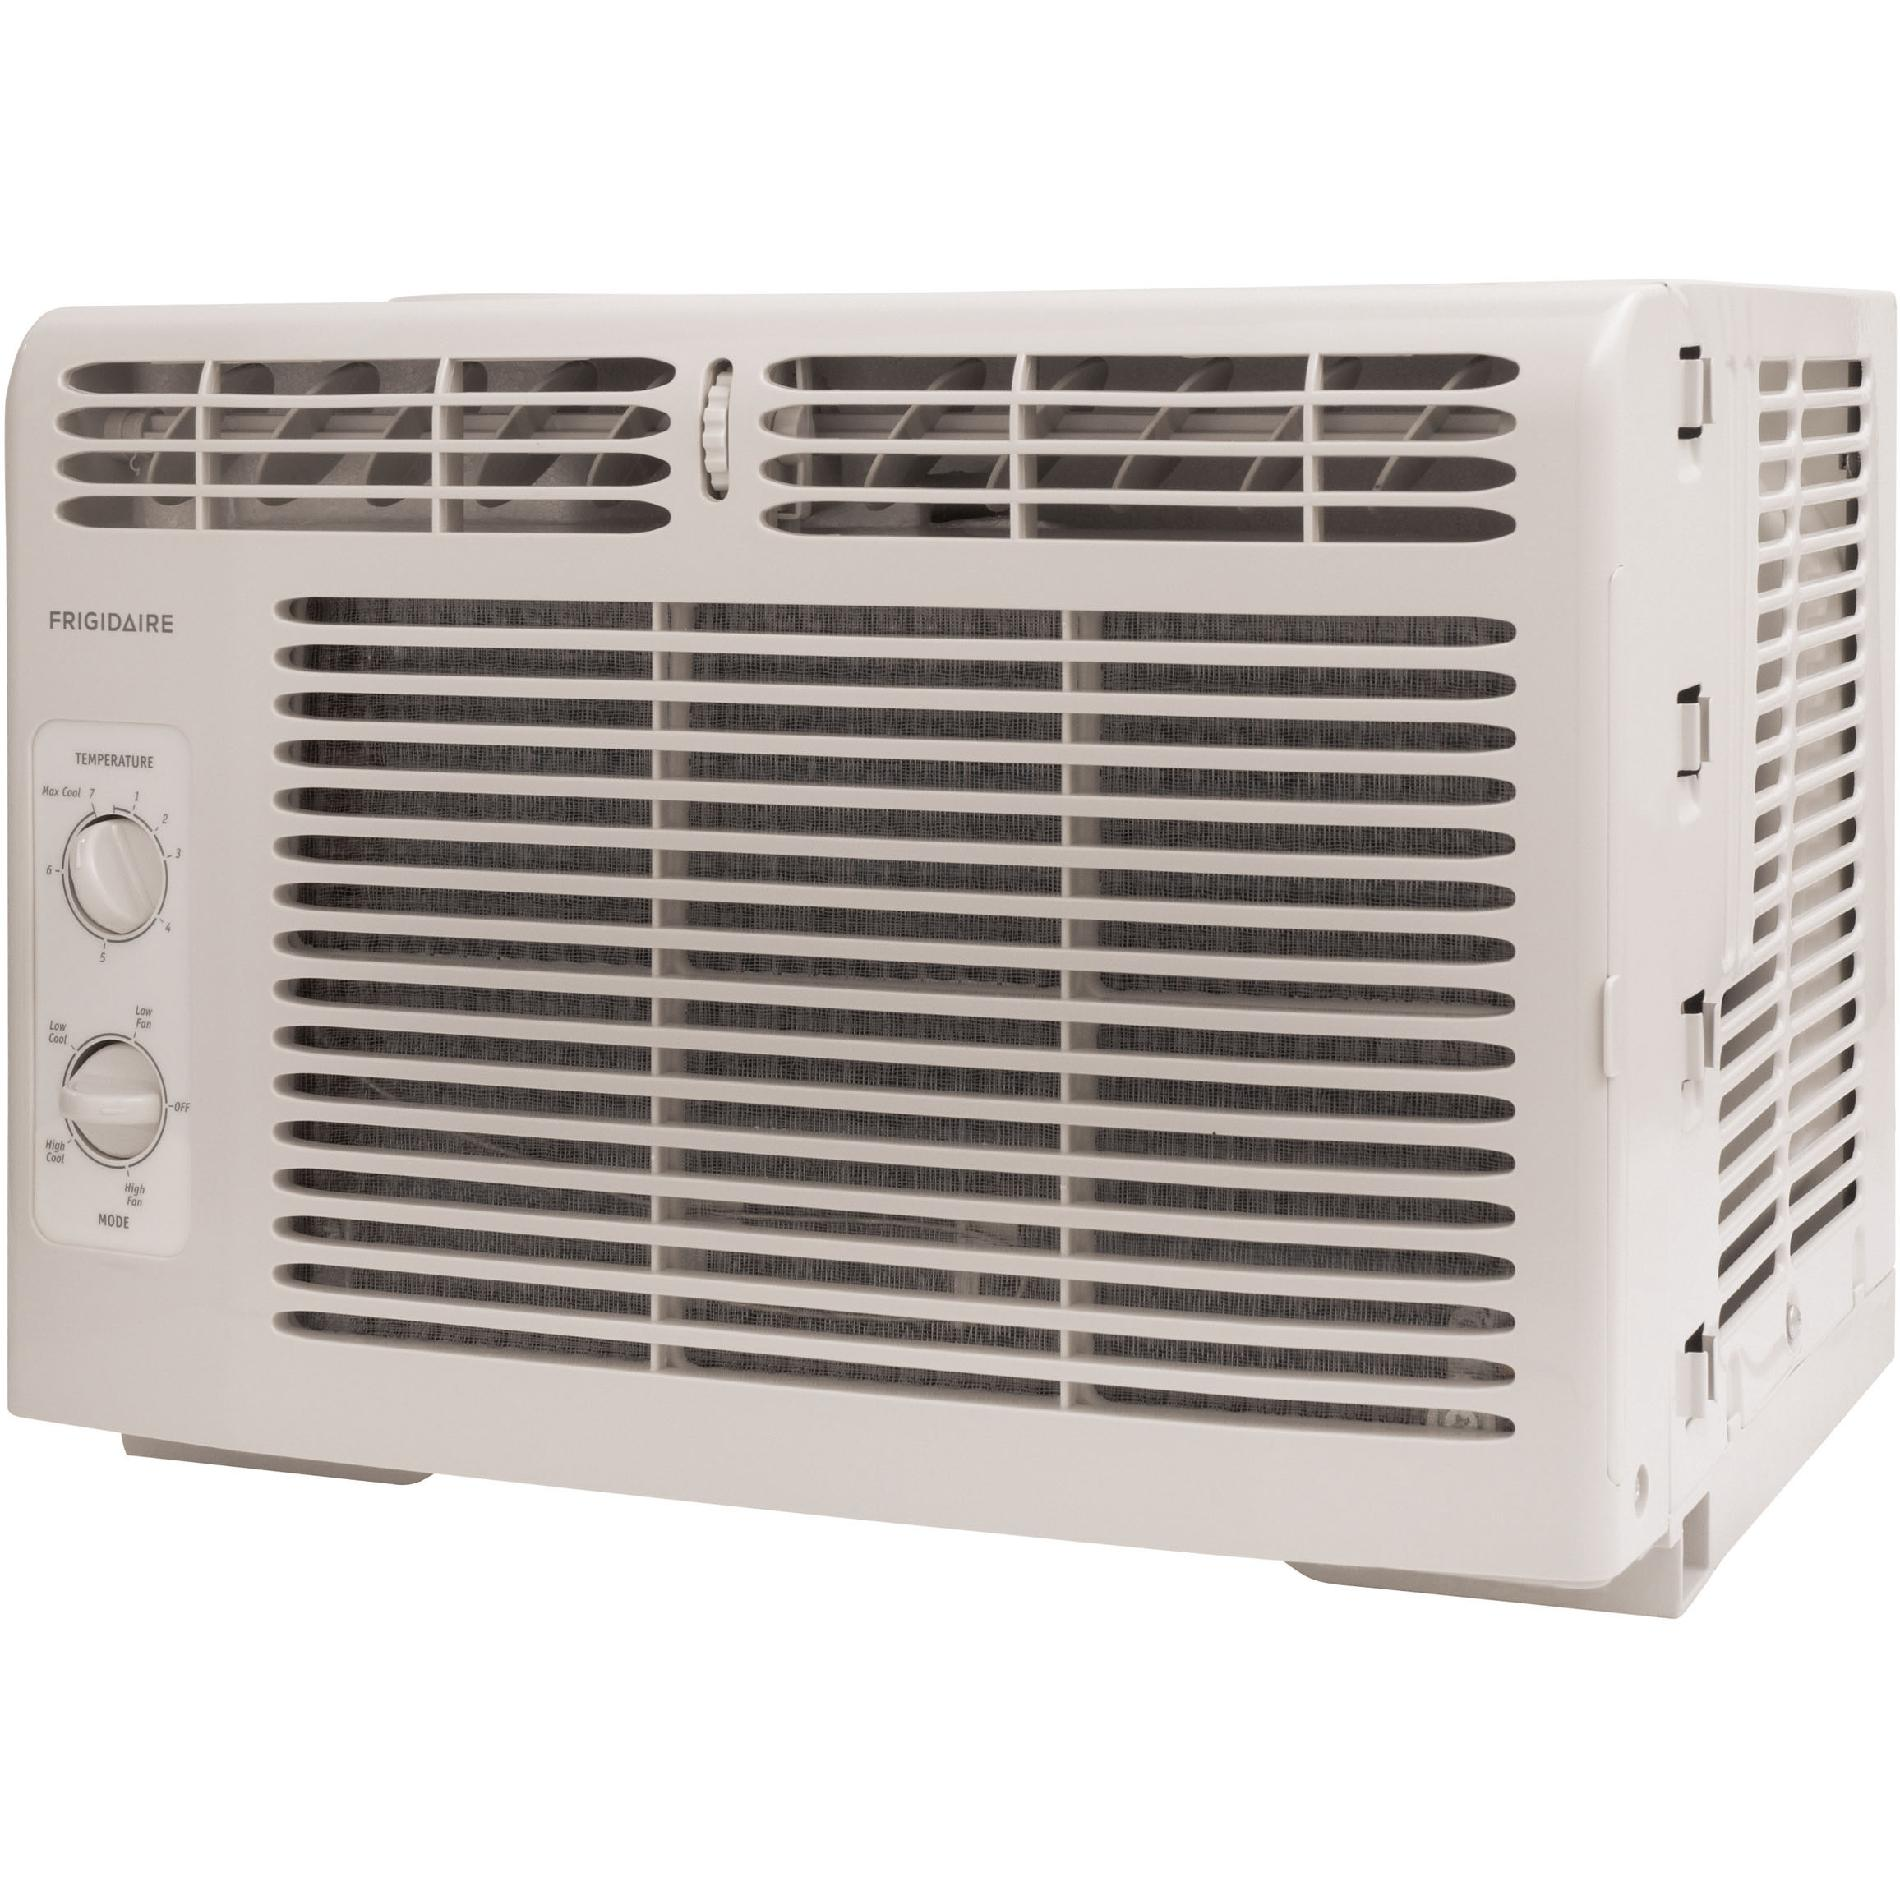 Frigidaire 8,000 BTU 115-Volt Window-Mounted Compact Air Conditioner with Mechanical Controls